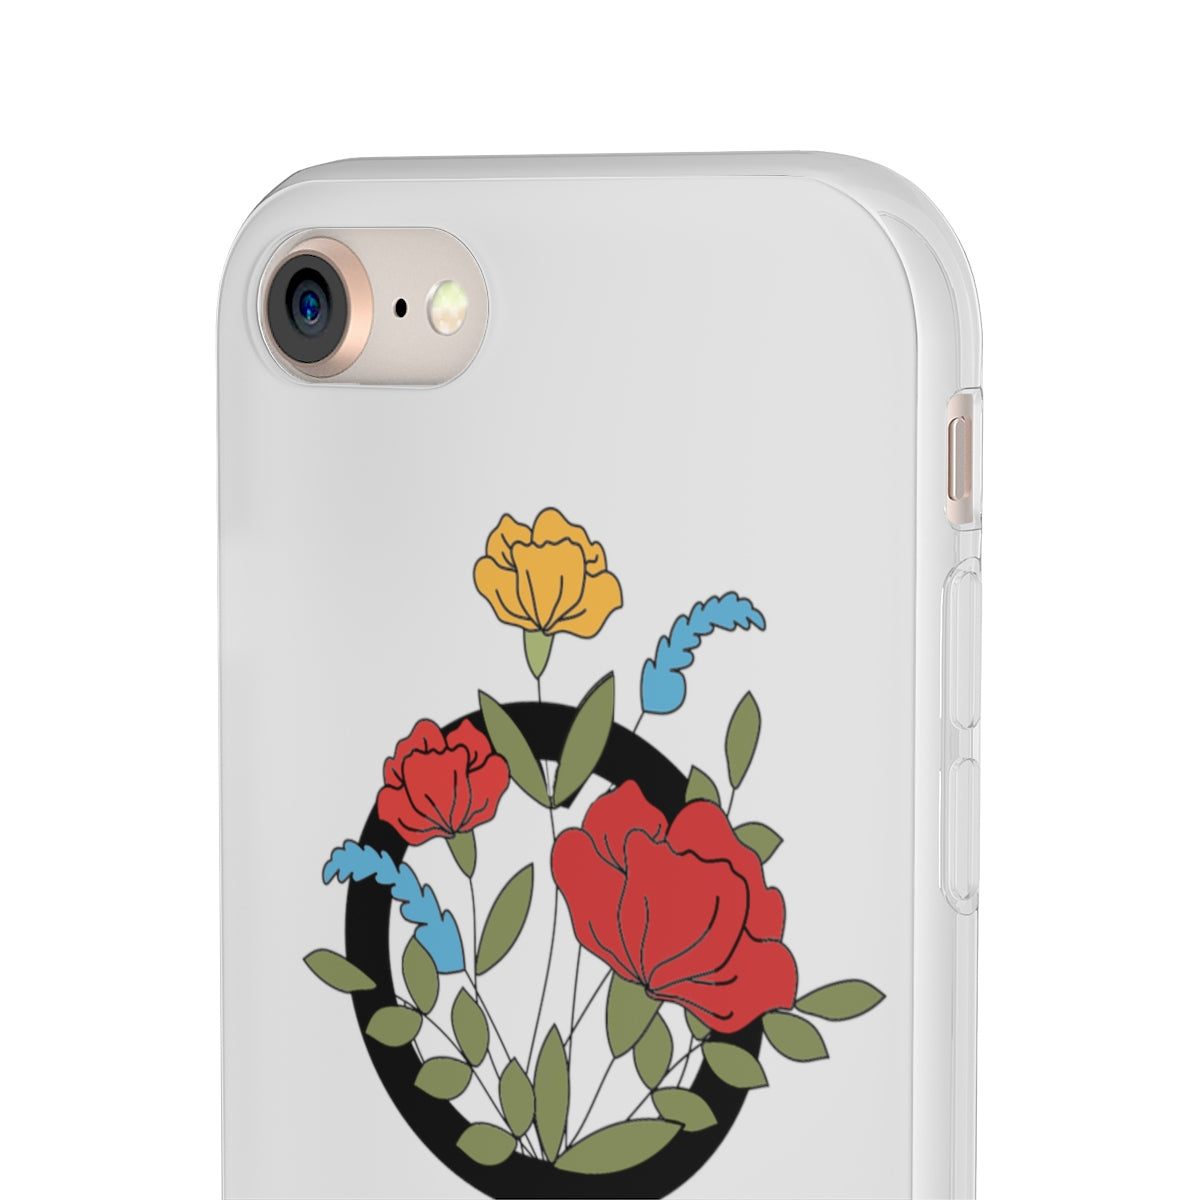 Flower Power Case, Phone Case - A life with no limits, embrace your inner feminist. Feminisme